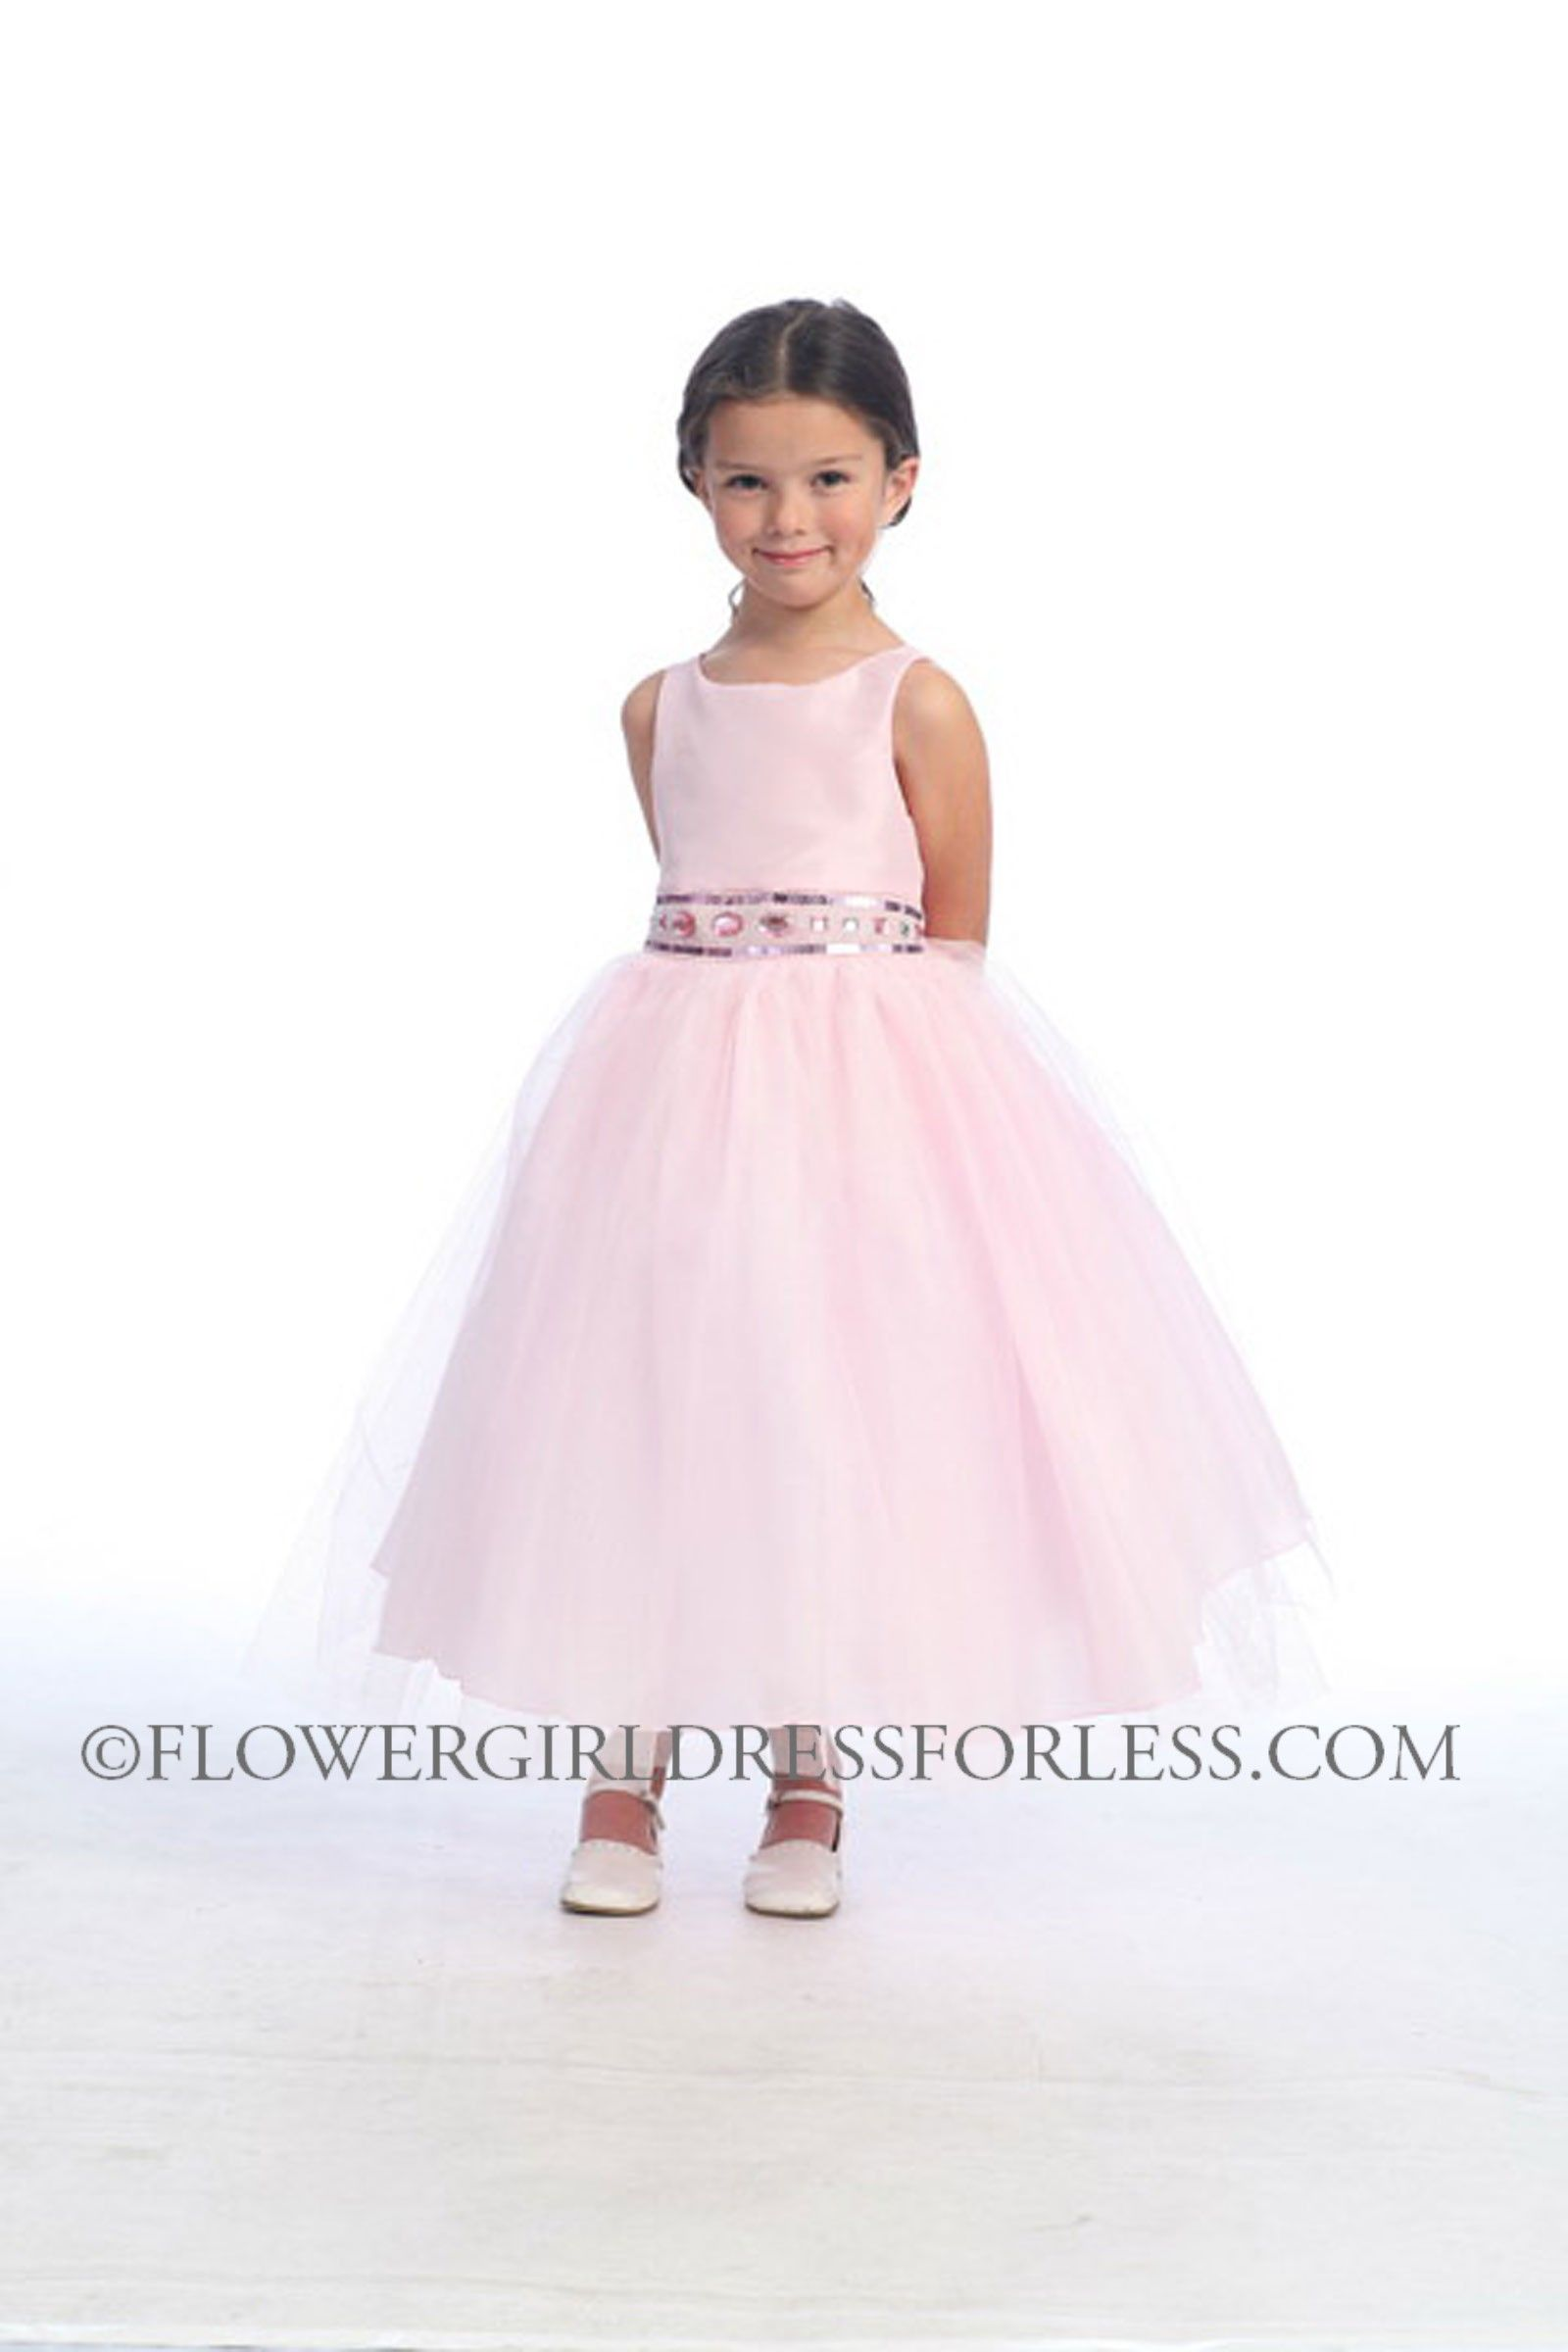 17 Best images about Flower girl dresses on Pinterest - Tulle ...